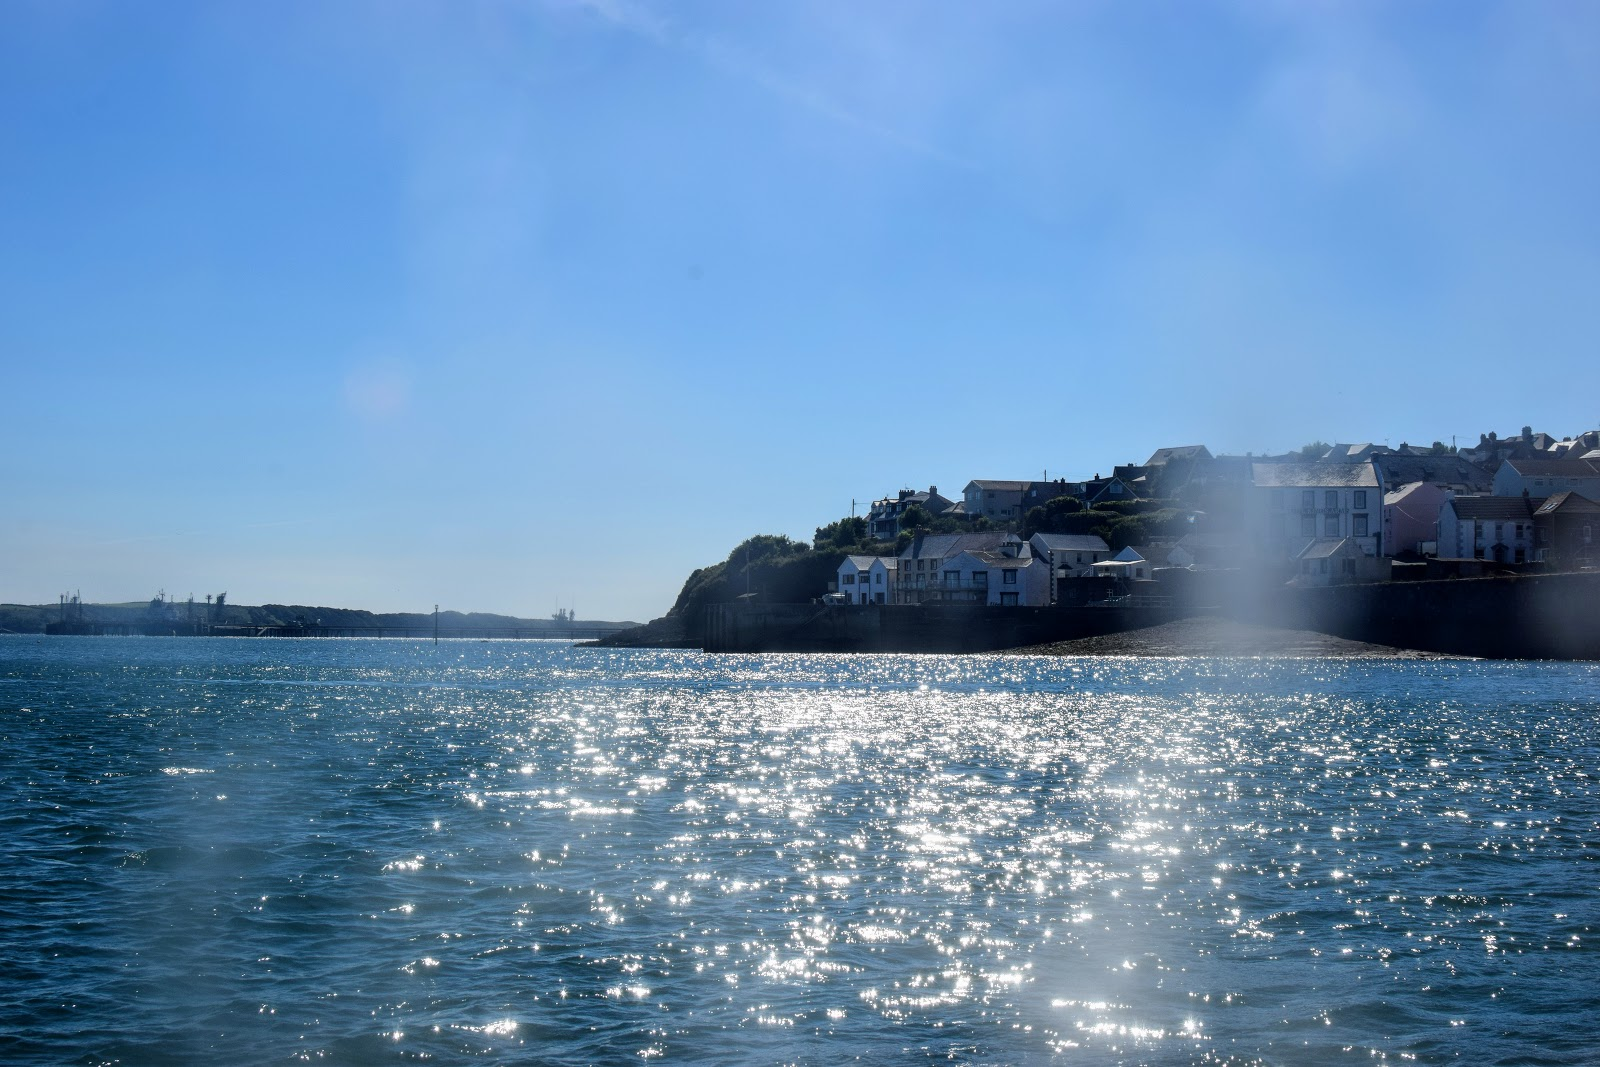 , Milford Marina Discover Coast and Cleddau Boat Trip Launch